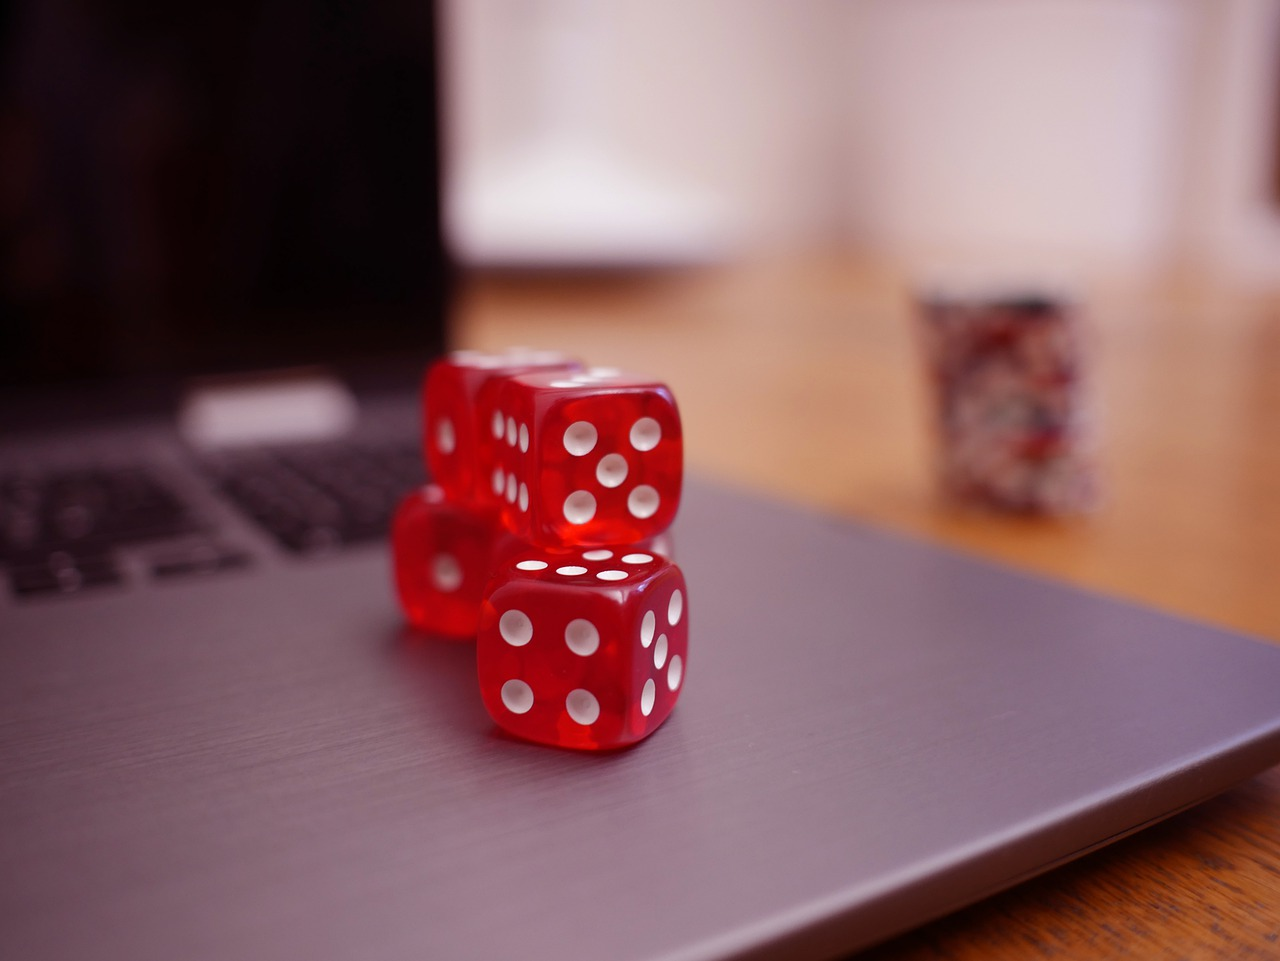 online poker games, gaming in the UK